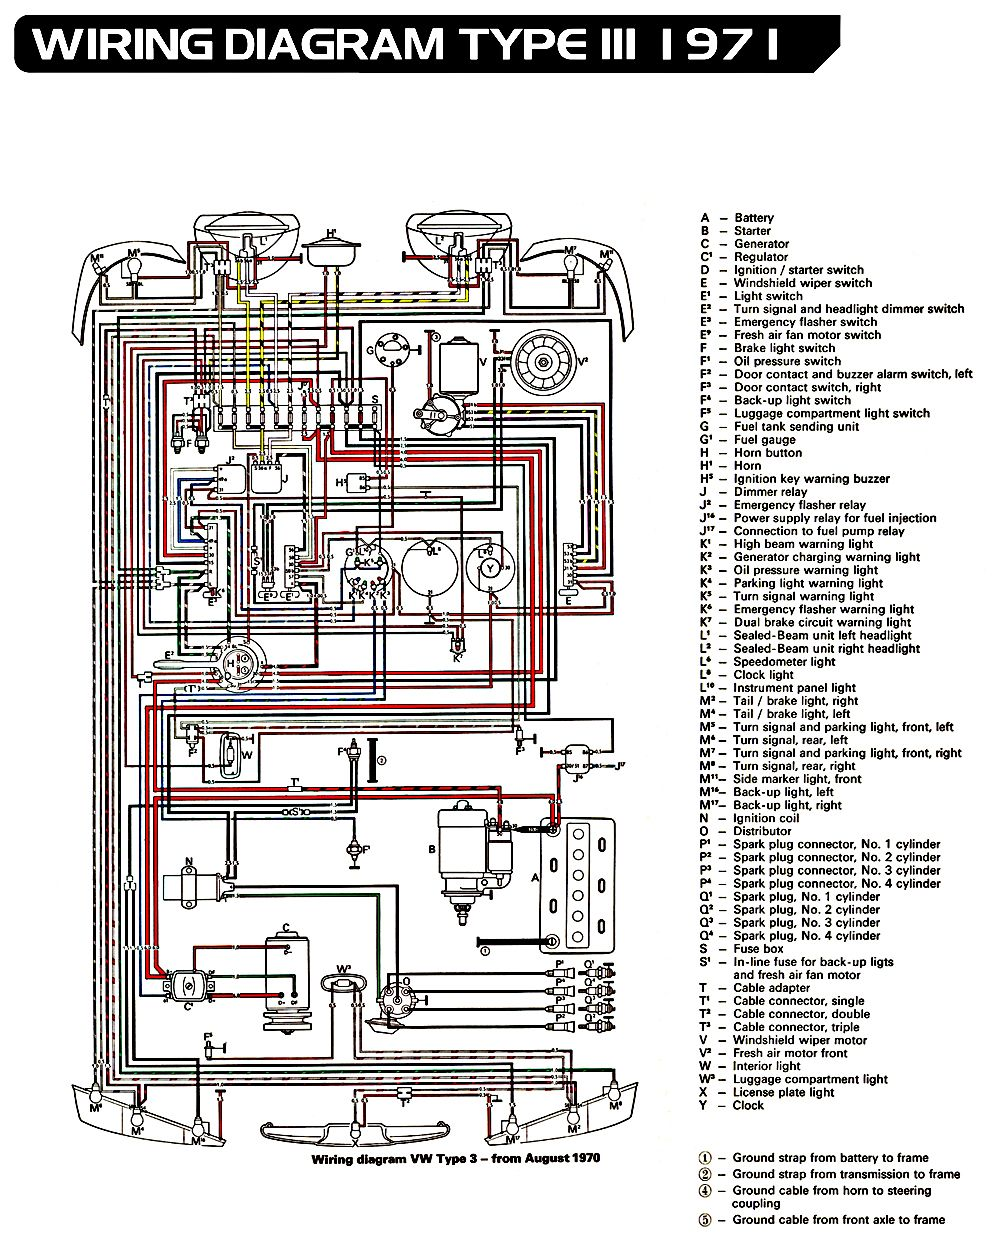 1971 Type 3 VW Wiring Diagram---so simple compared to a modern ecu ...